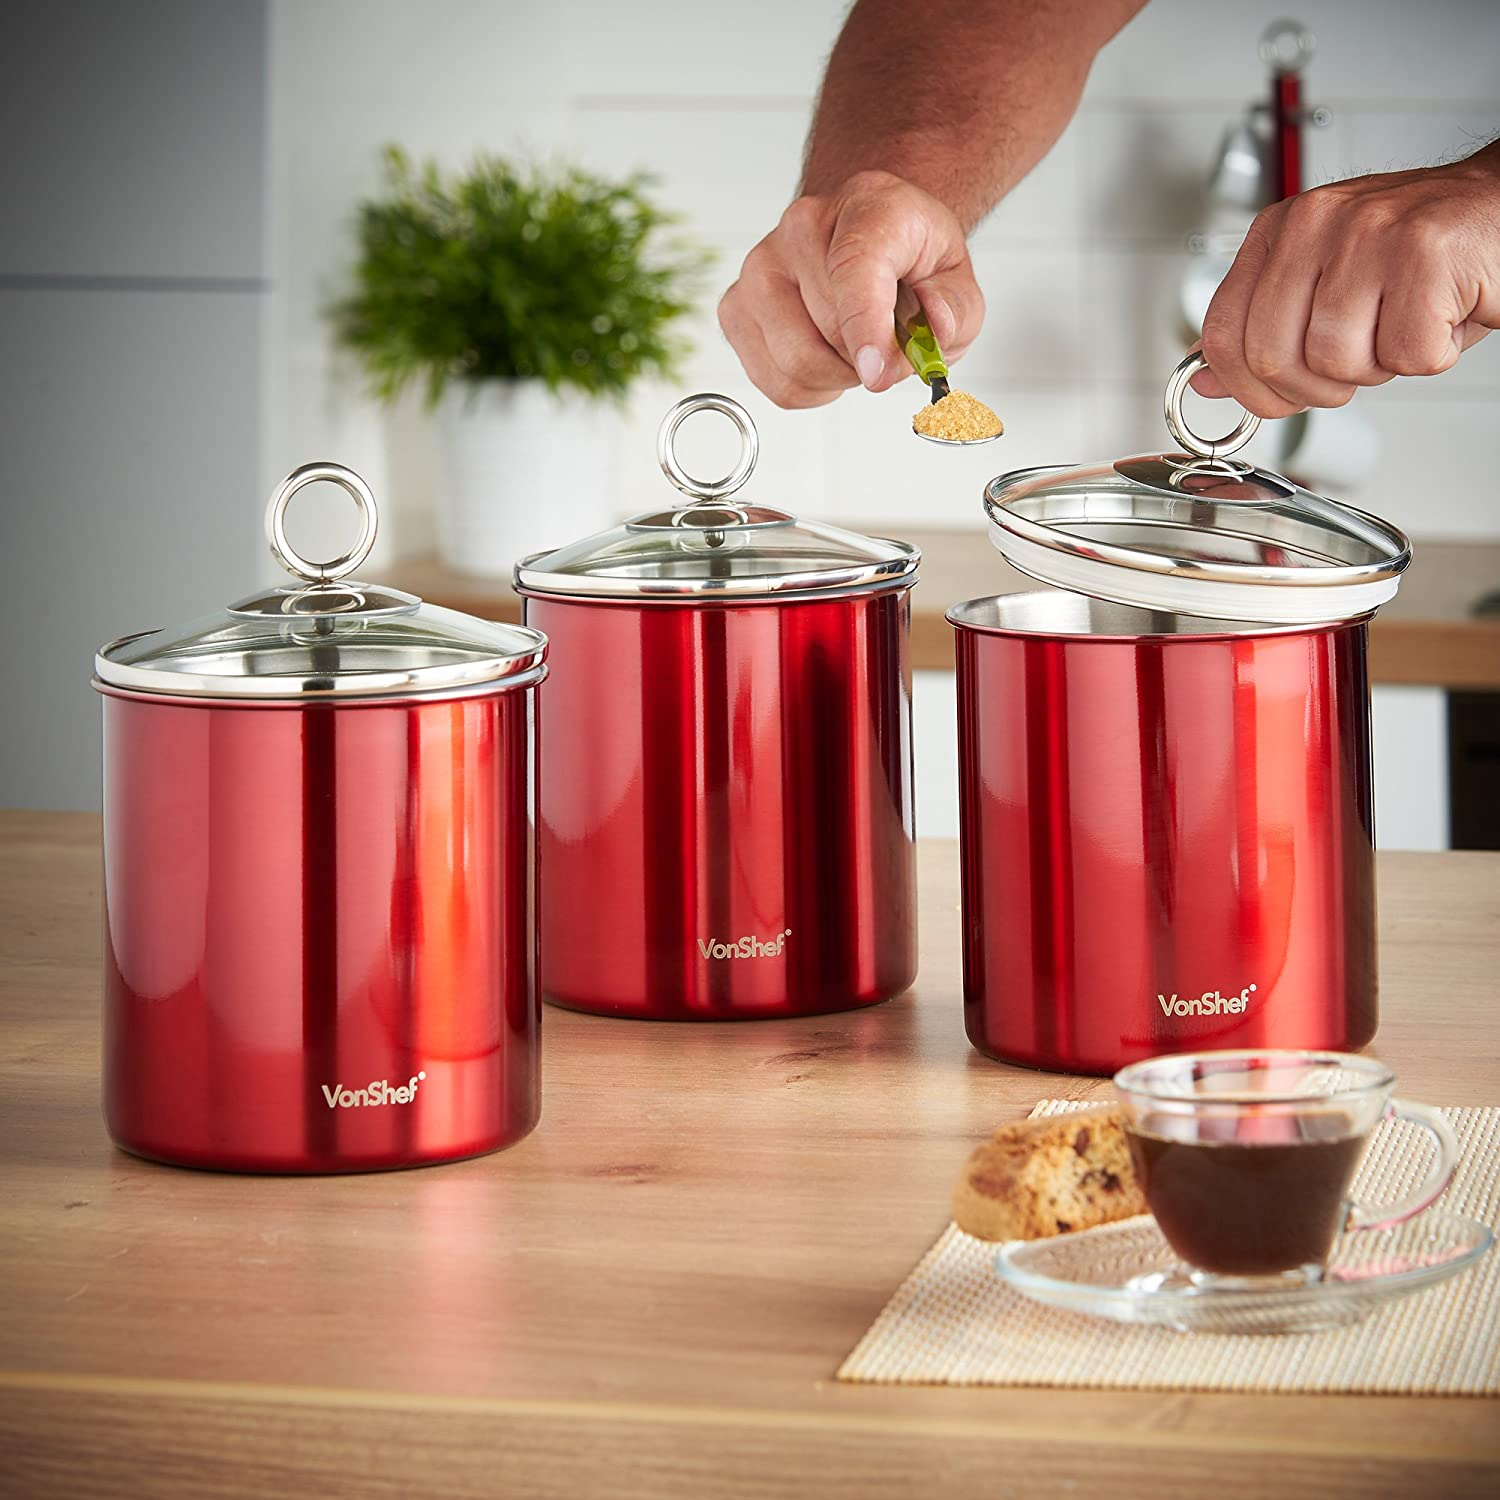 Awesome VonShef Set Of 3 Tea, Coffee U0026 Sugar Canisters/ Kitchen Storage Jars With  Glass Lids   Red Stainless Steel: Amazon.co.uk: Kitchen U0026 Home